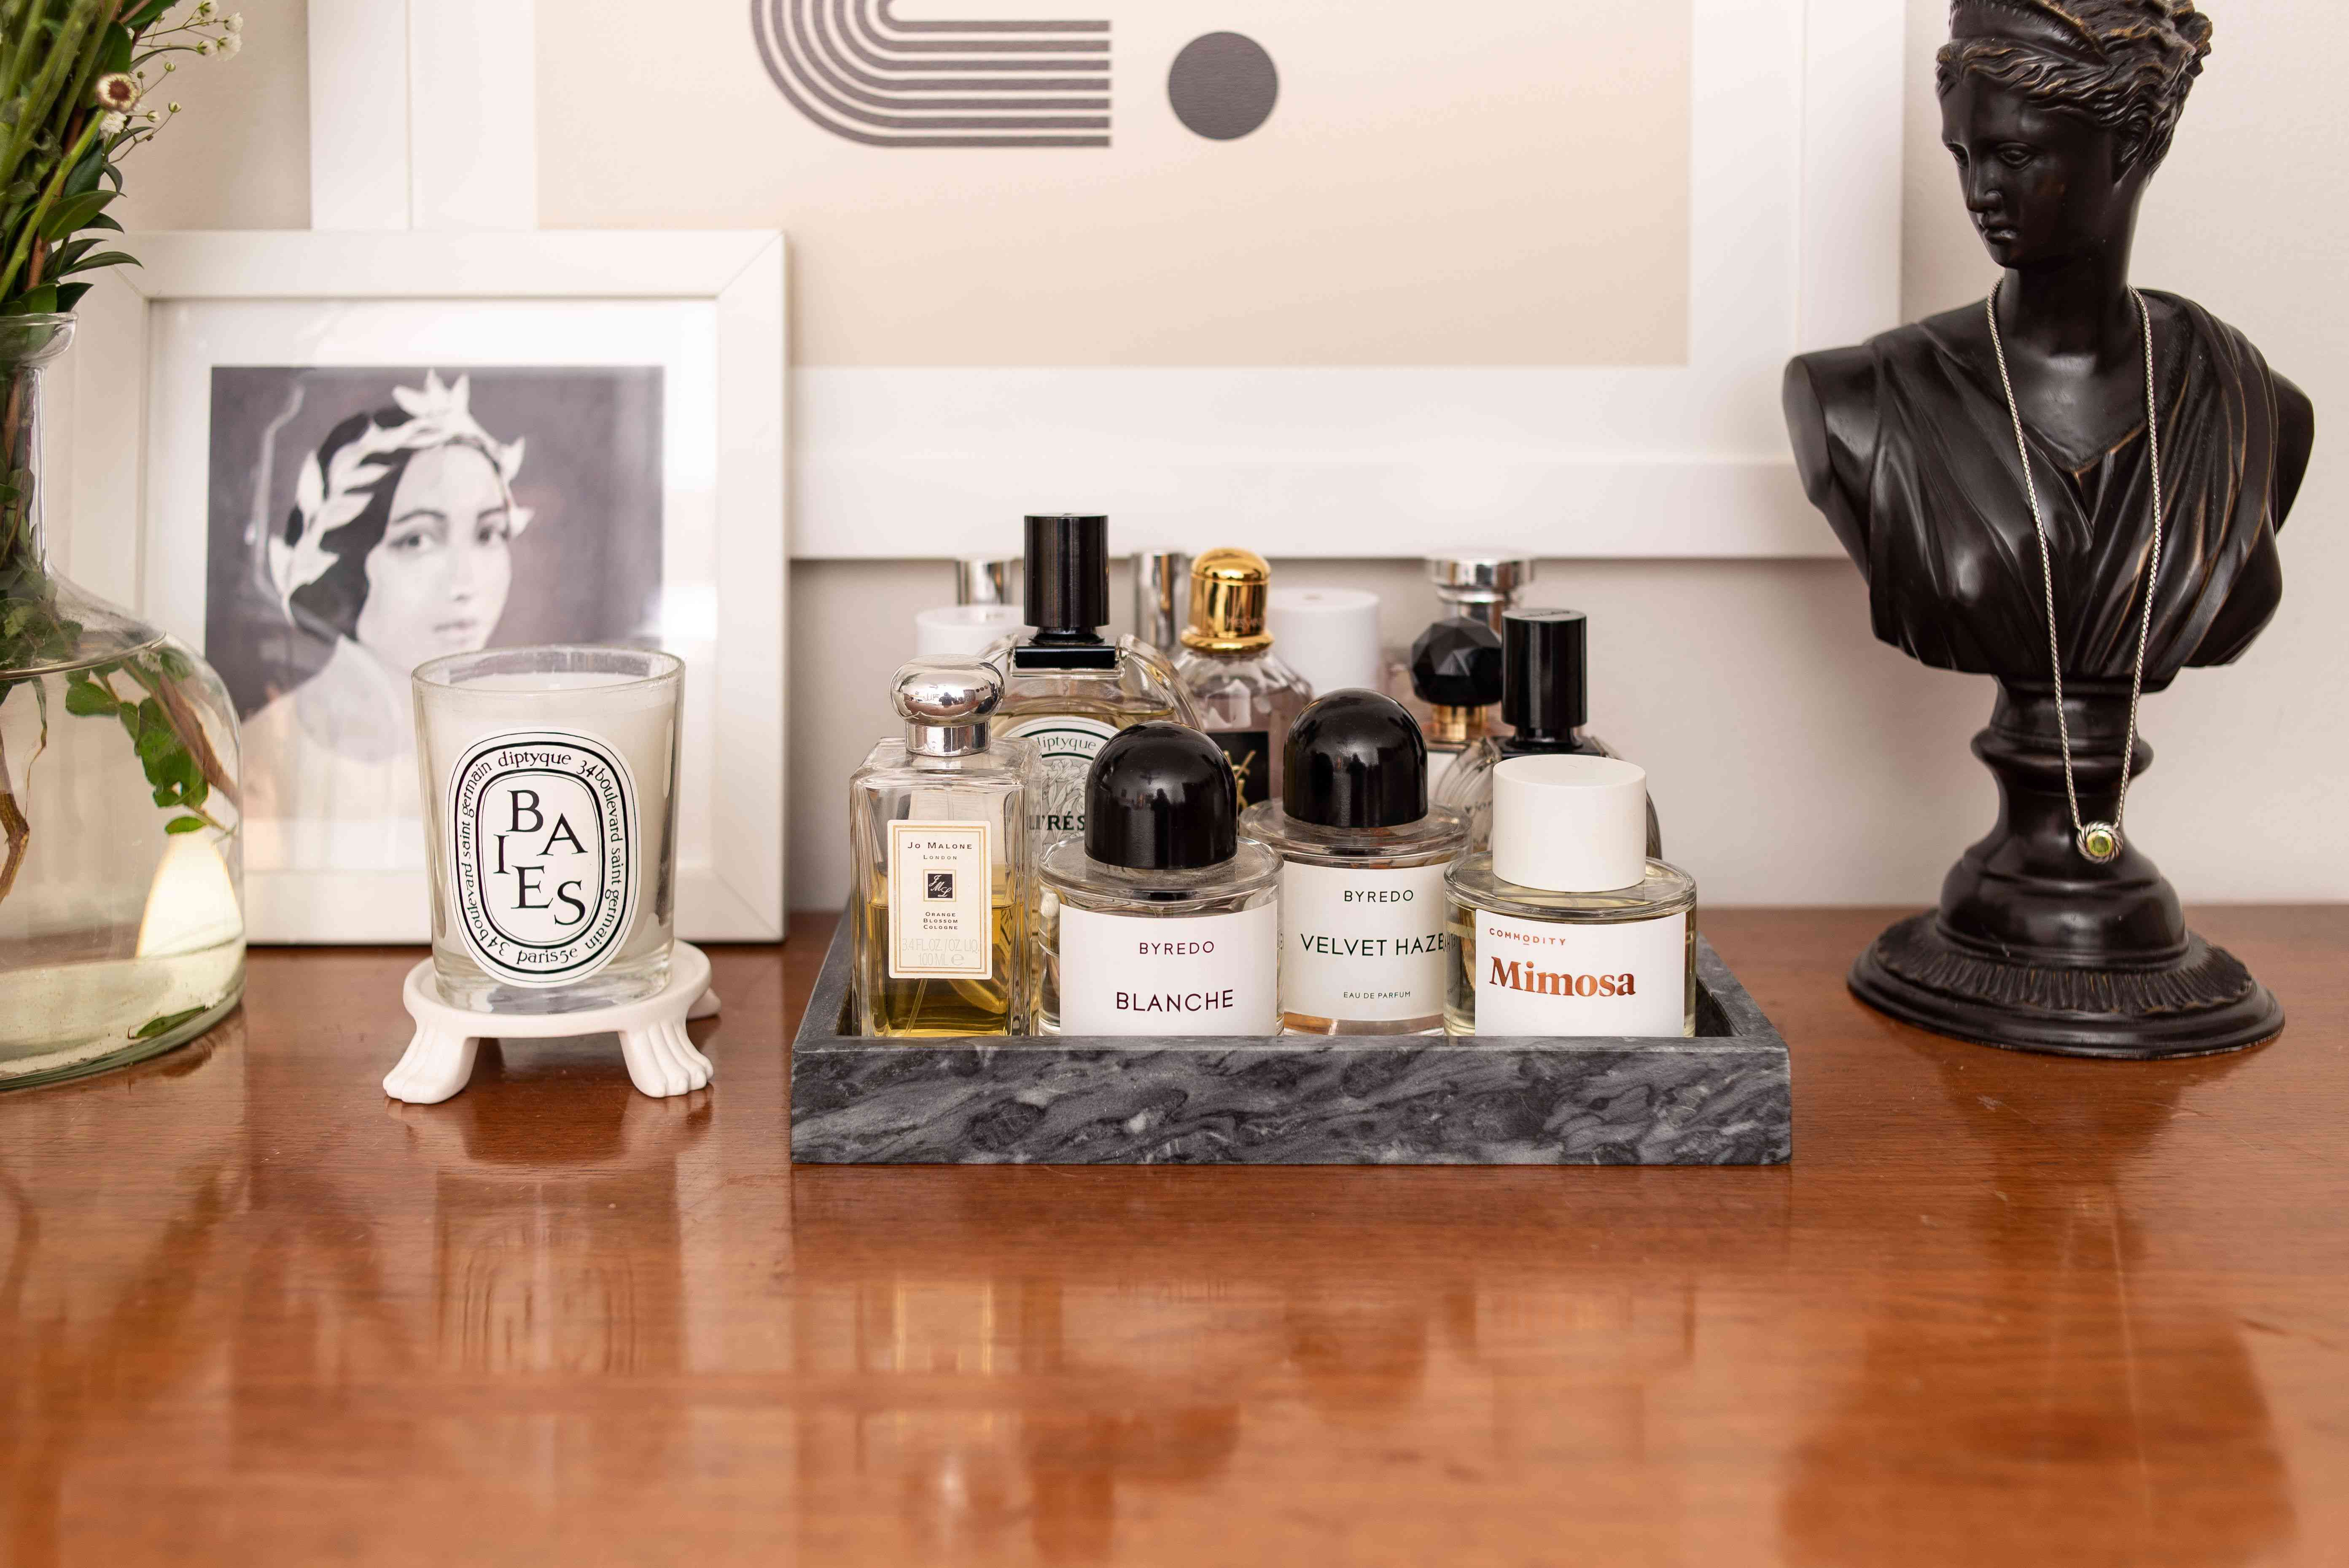 Perfumes and bust statue.